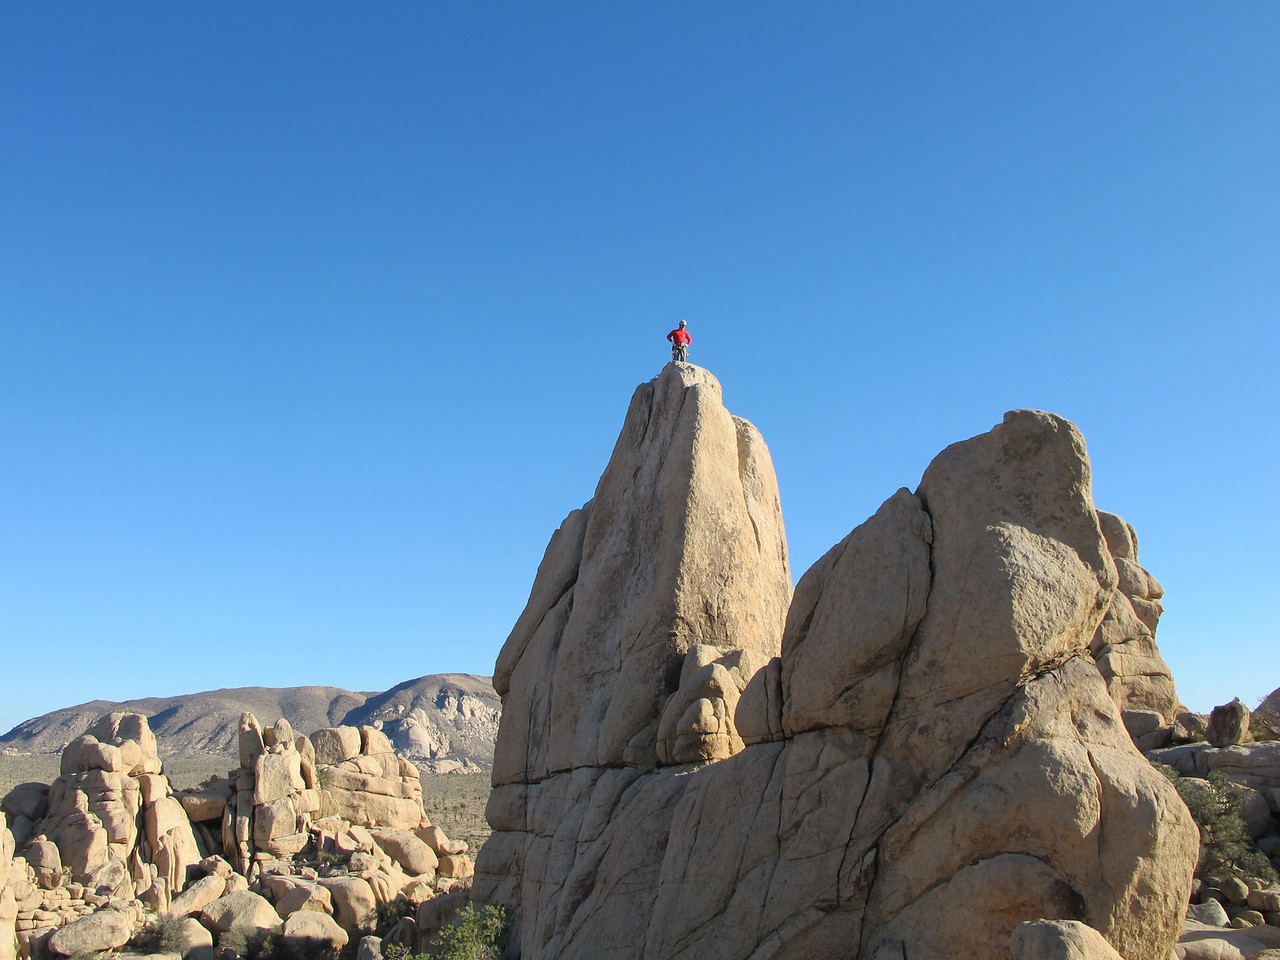 29/10/13 Mark topping out on Joshua Tree's easiest 5.9 crack.